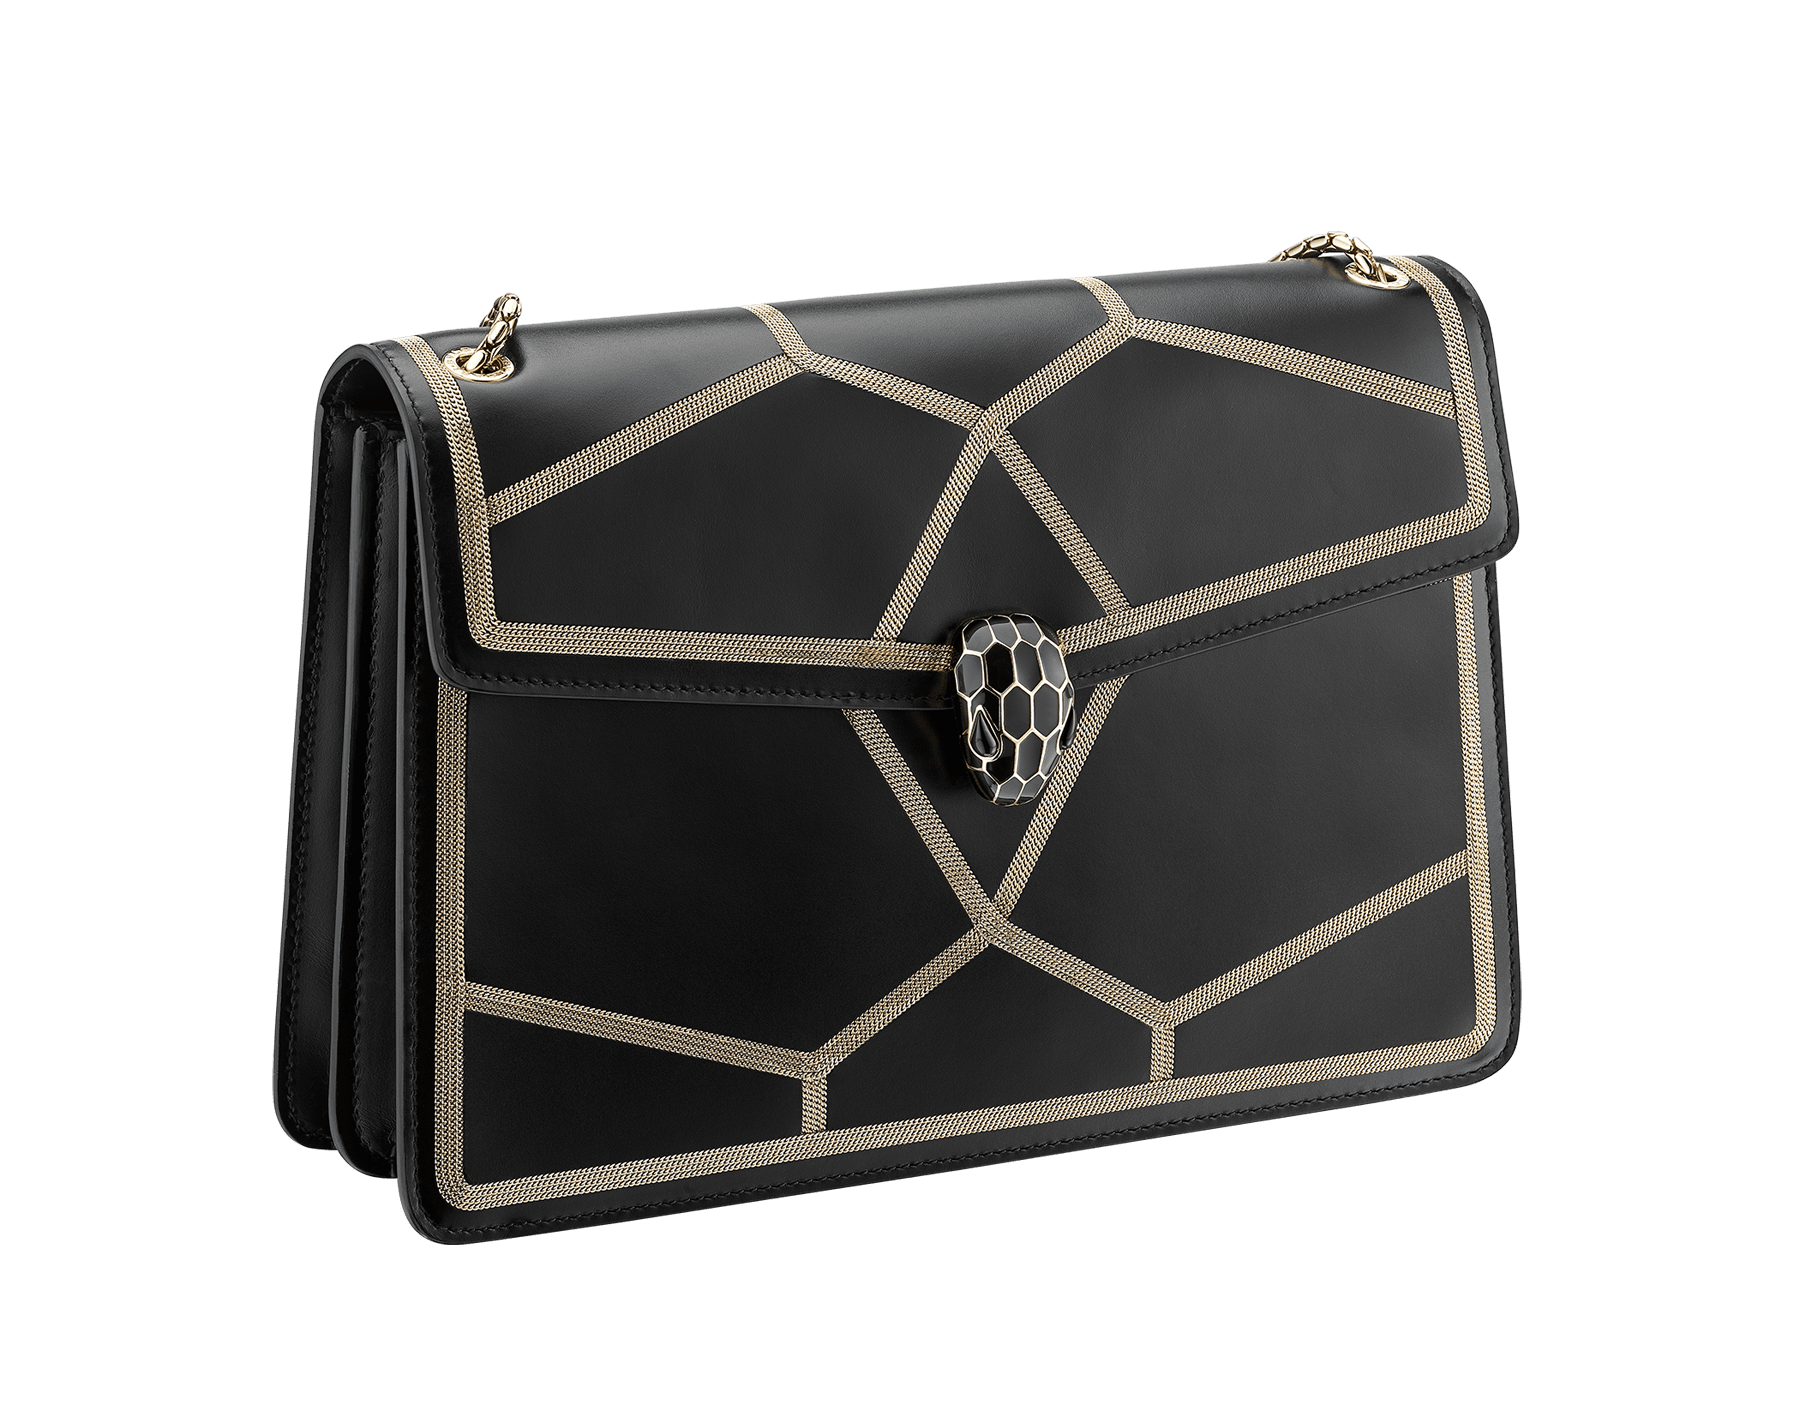 """Serpenti Forever"" shoulder bag in black calf leather and Million Chain frame body and black calf leather sides. Iconic snake head closure in light gold-plated brass enriched with black enamel and black onyx eyes. 288925 image 2"